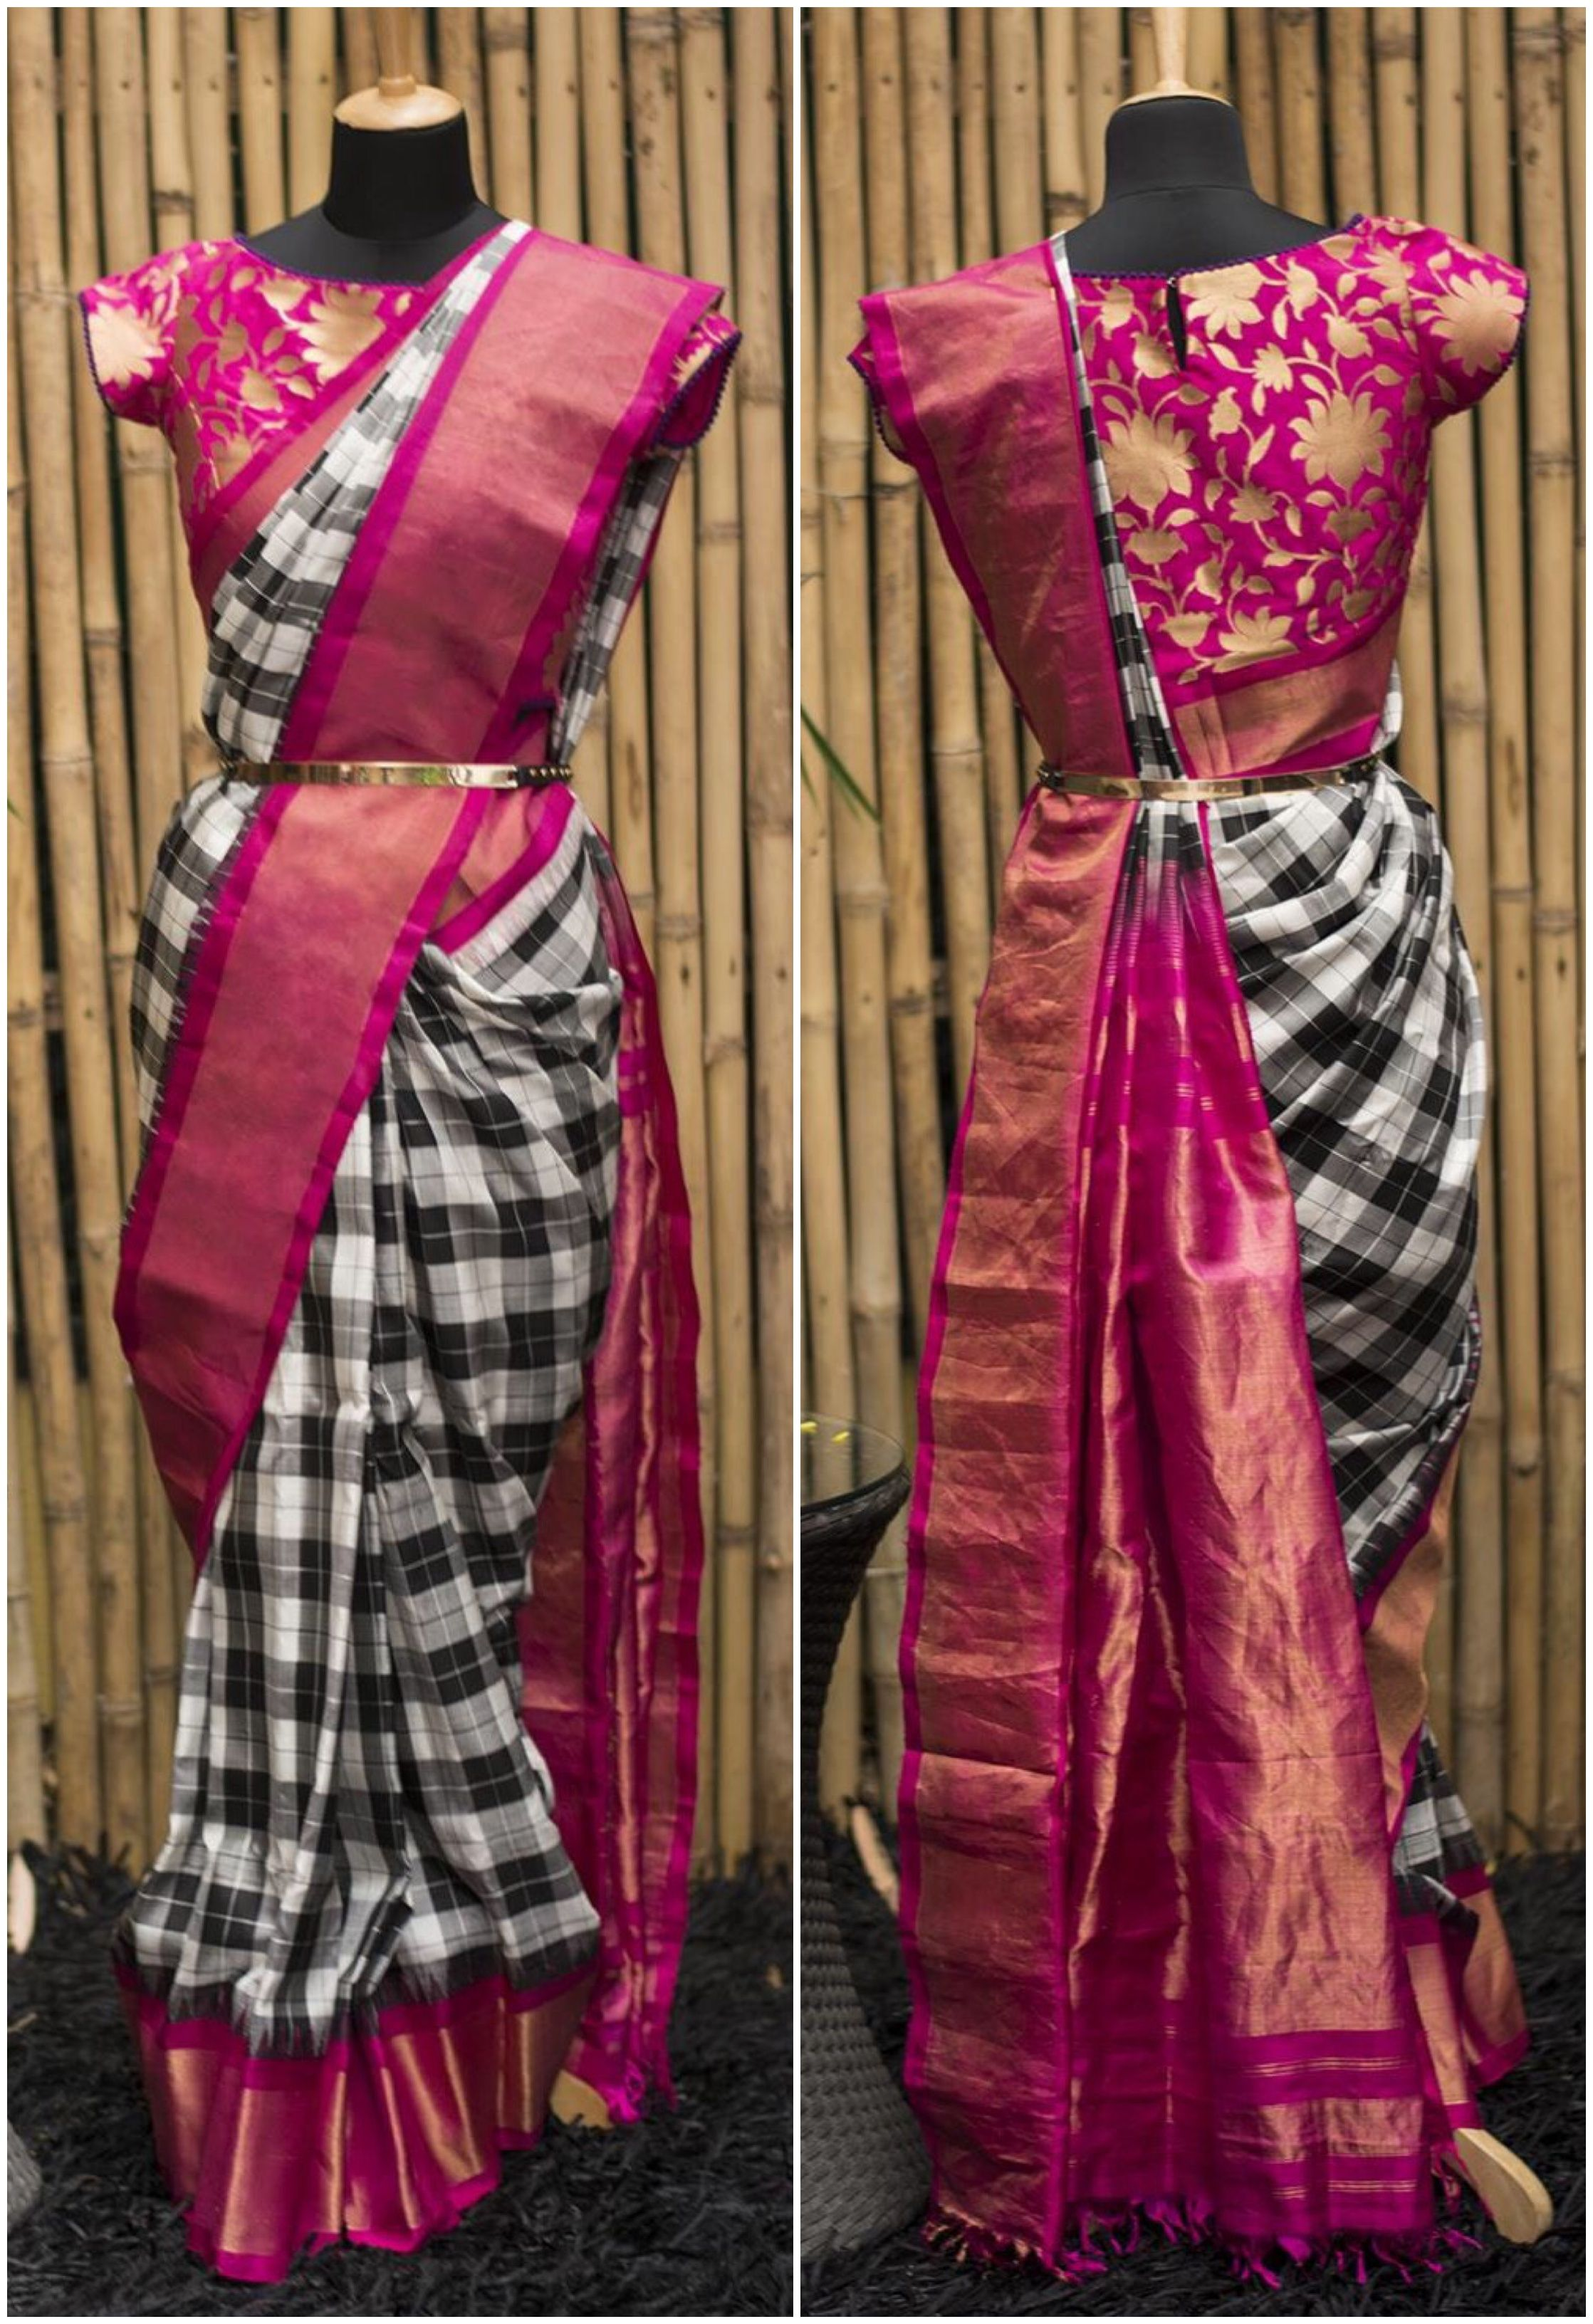 d1550f9d568c9 Black white checked Gadwal pure silk saree with pink border